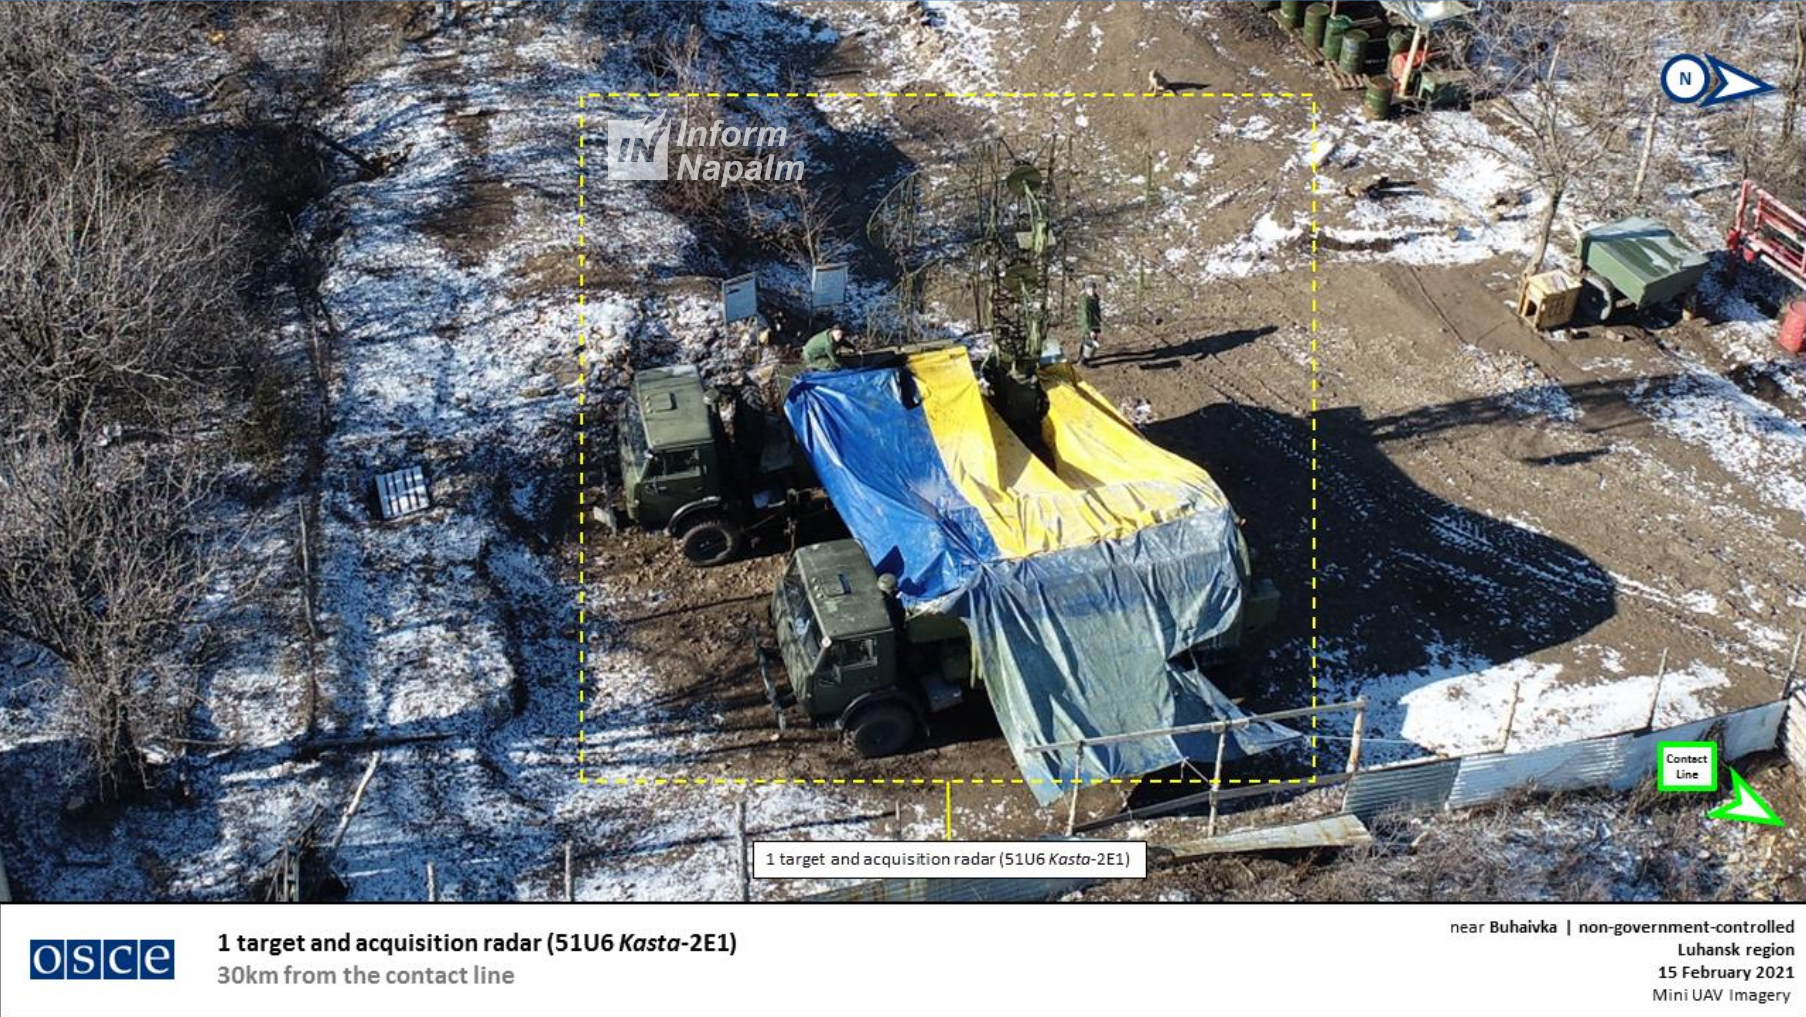 Radarstation KASTA-2E1 dold under en ukrainsk flagga